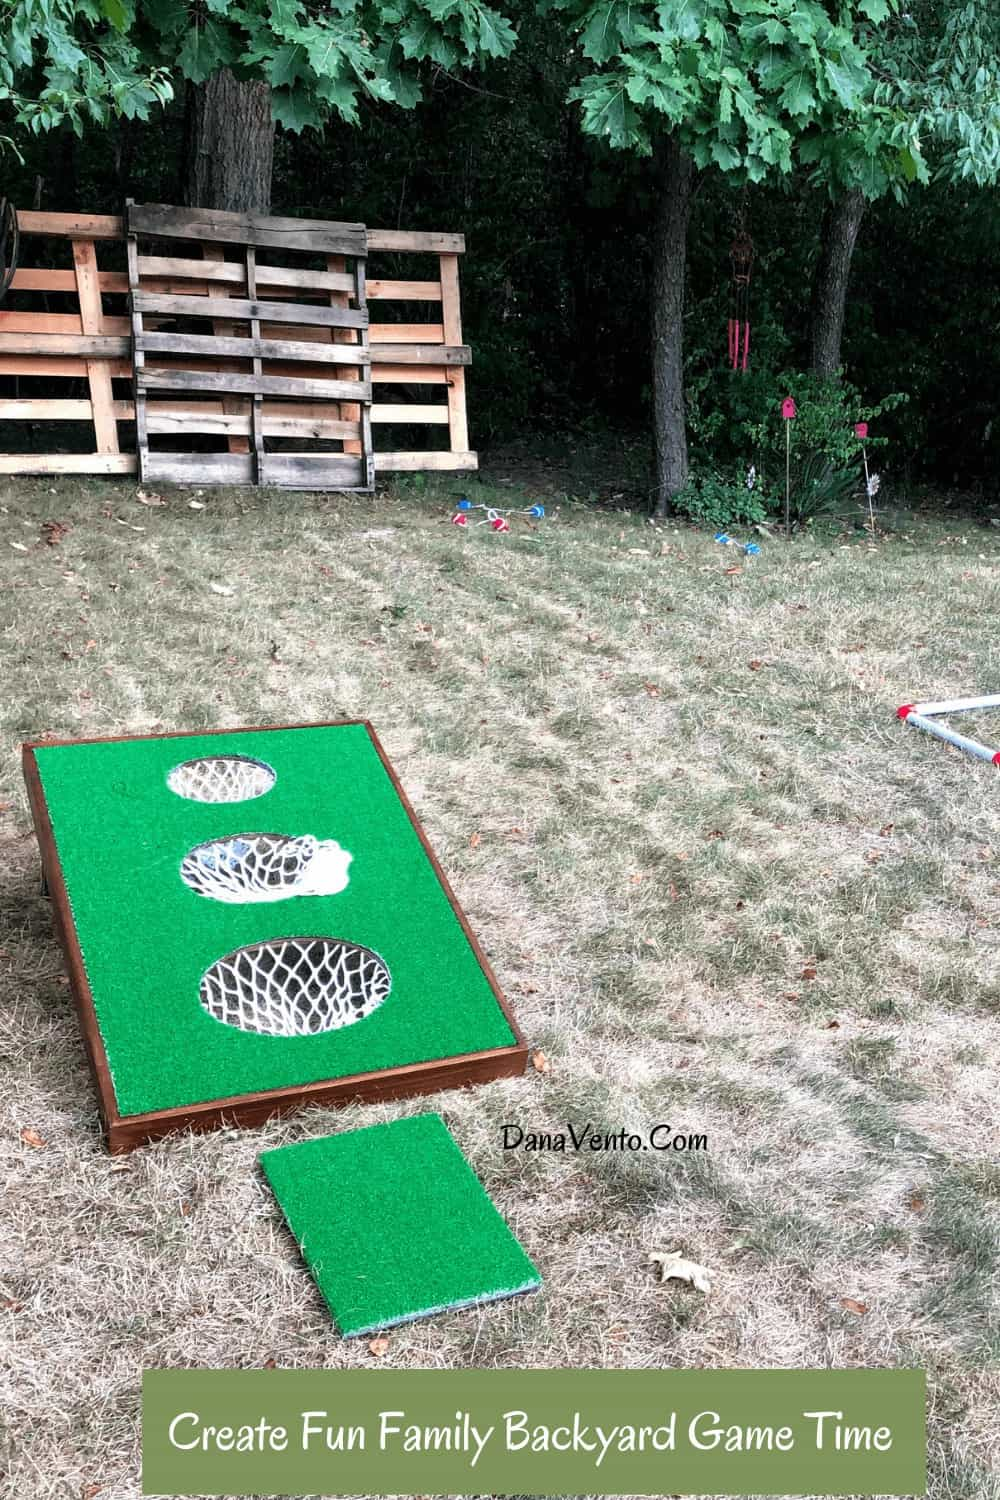 GoSports BattleChip VERSUS Golf Cornhole Chipping Game